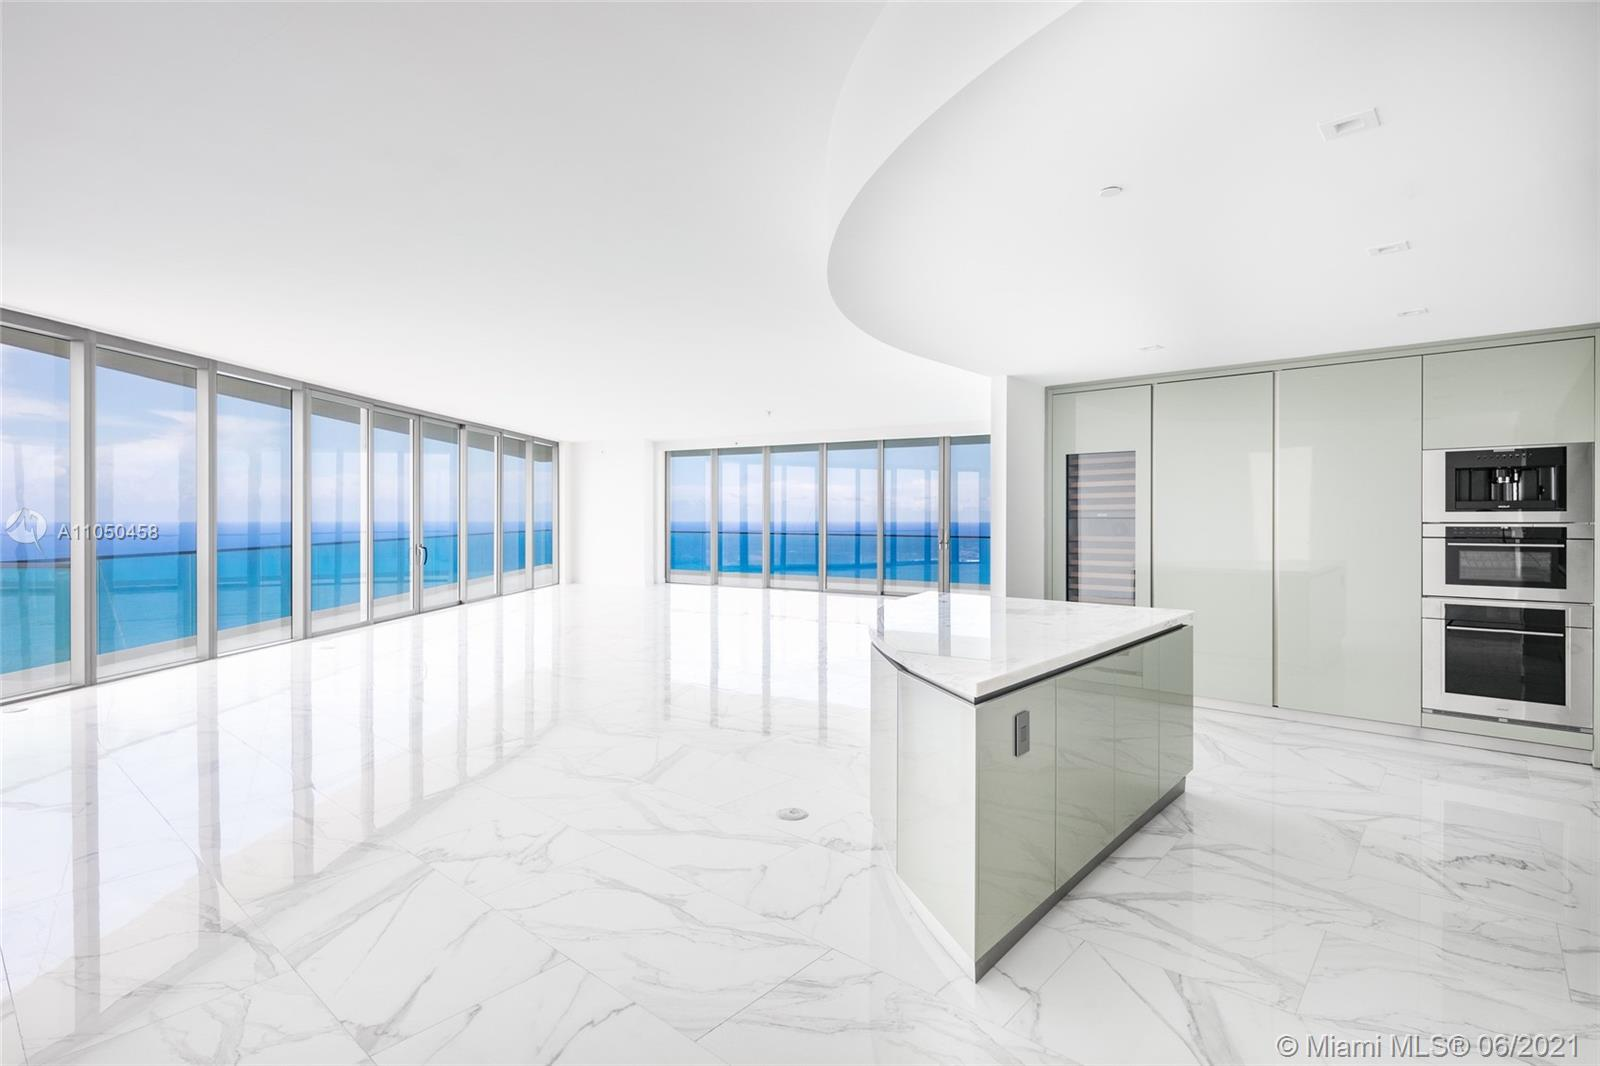 18975 Collins Ave, Unit #5100 Luxury Real Estate